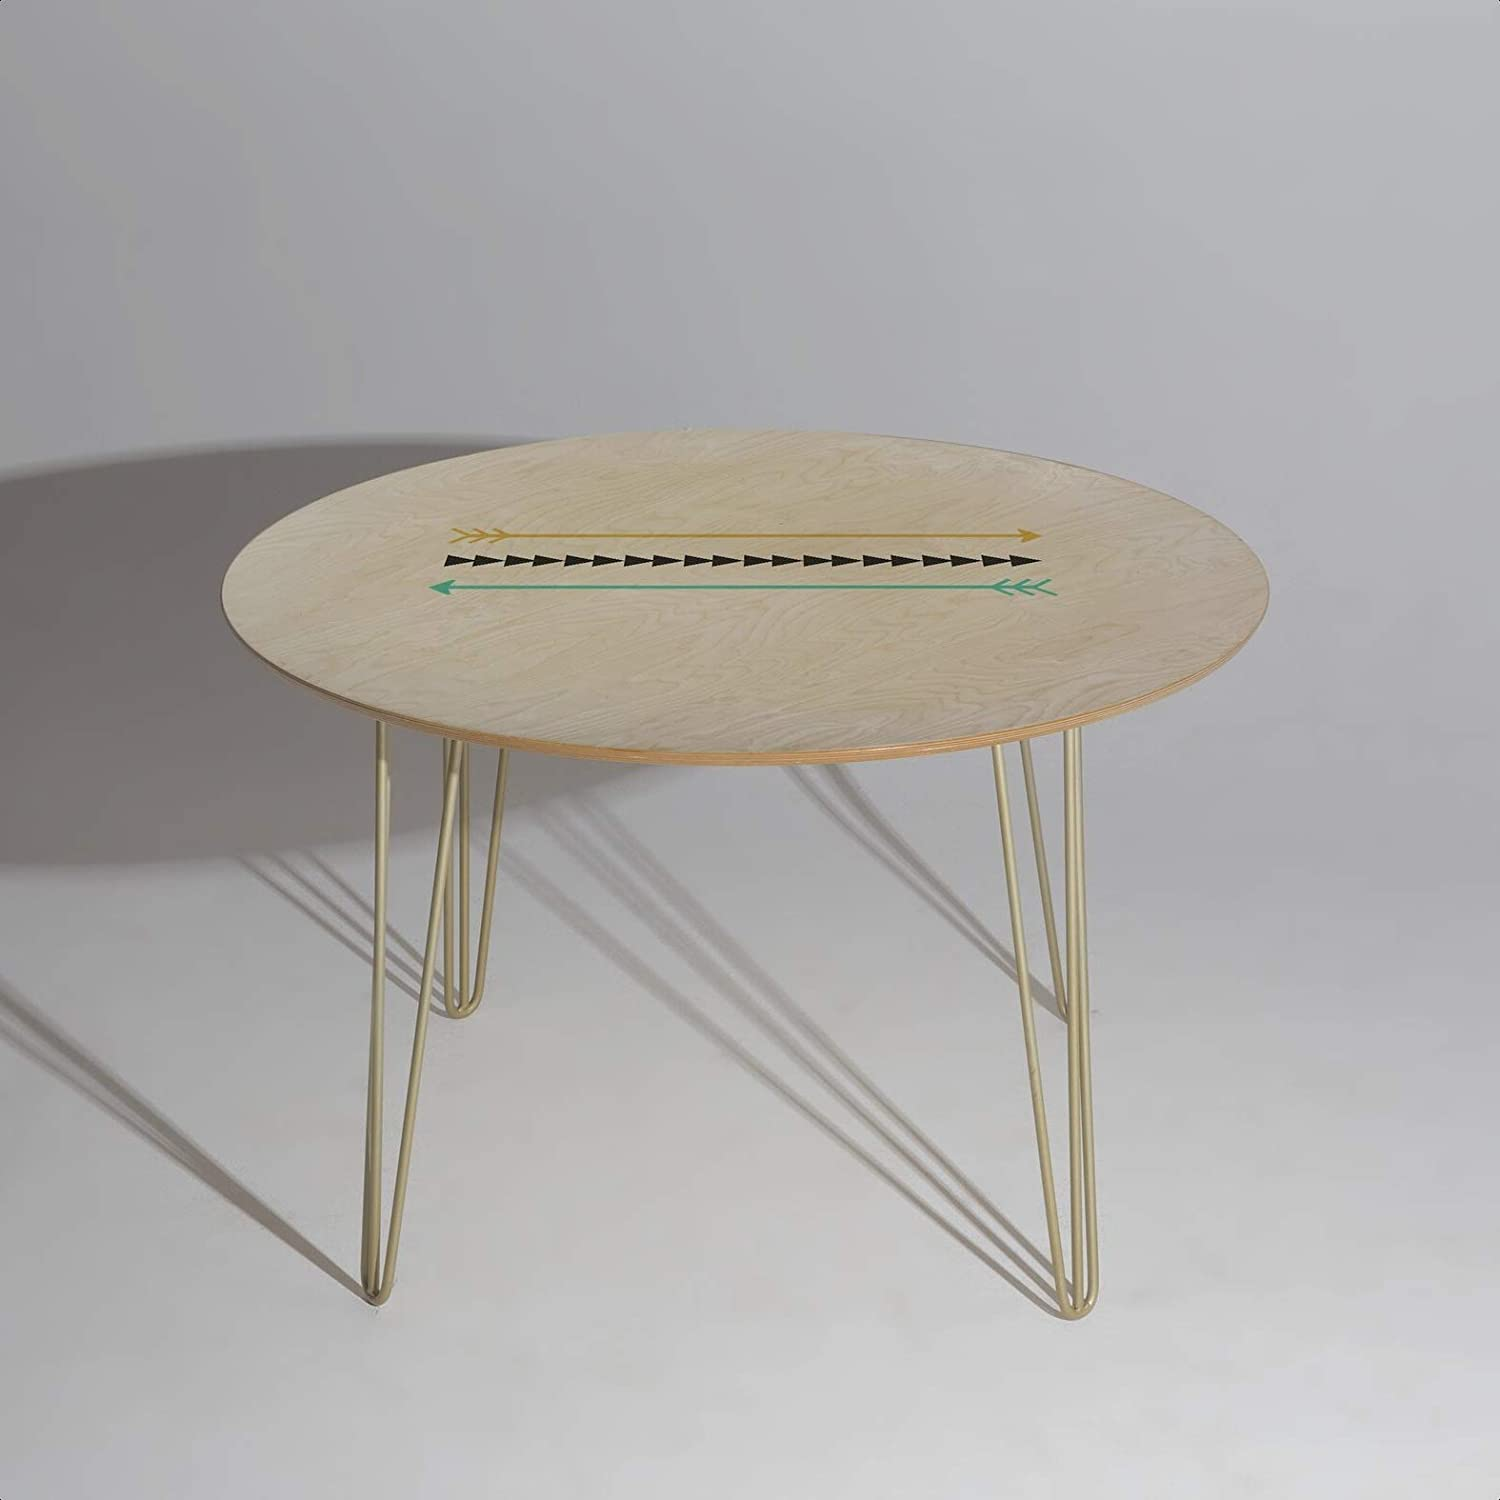 Superior Mouton Dining Max 90% OFF Table Base Material: Details: Metal Top Material